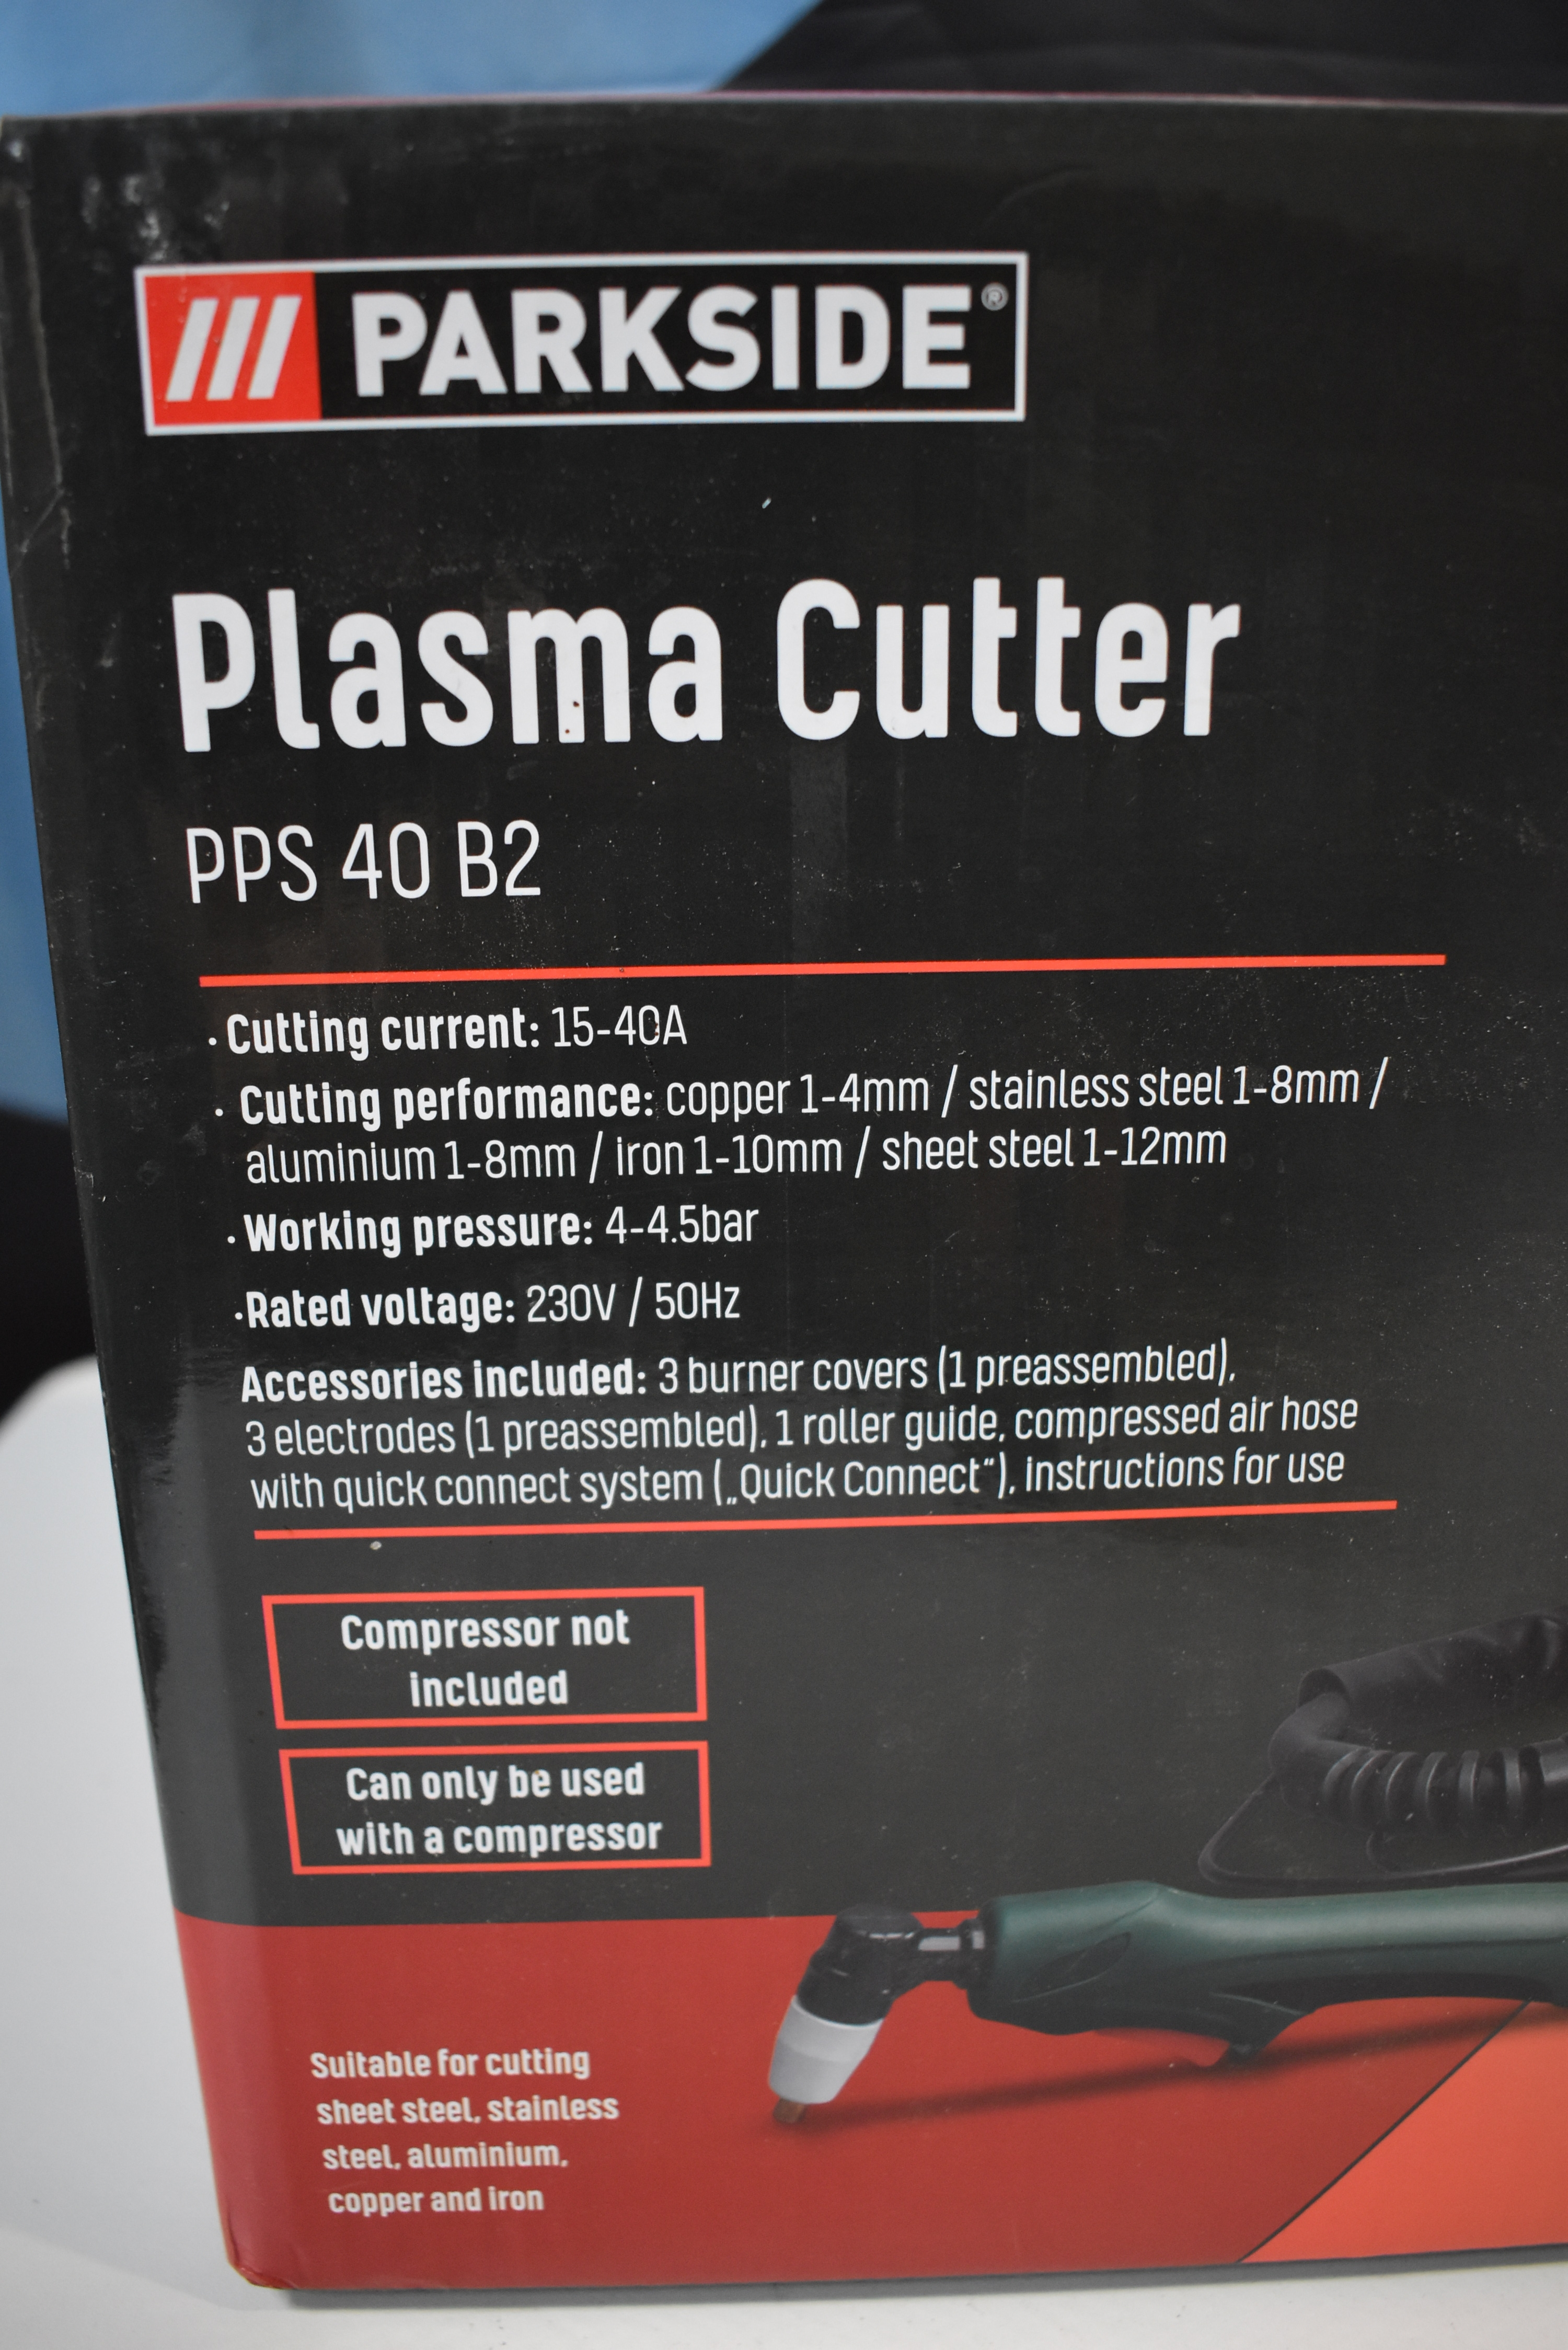 Plasma Cutter From Parkside Pps 40 B2 Ps Auction We Value The Future Largest In Net Auctions